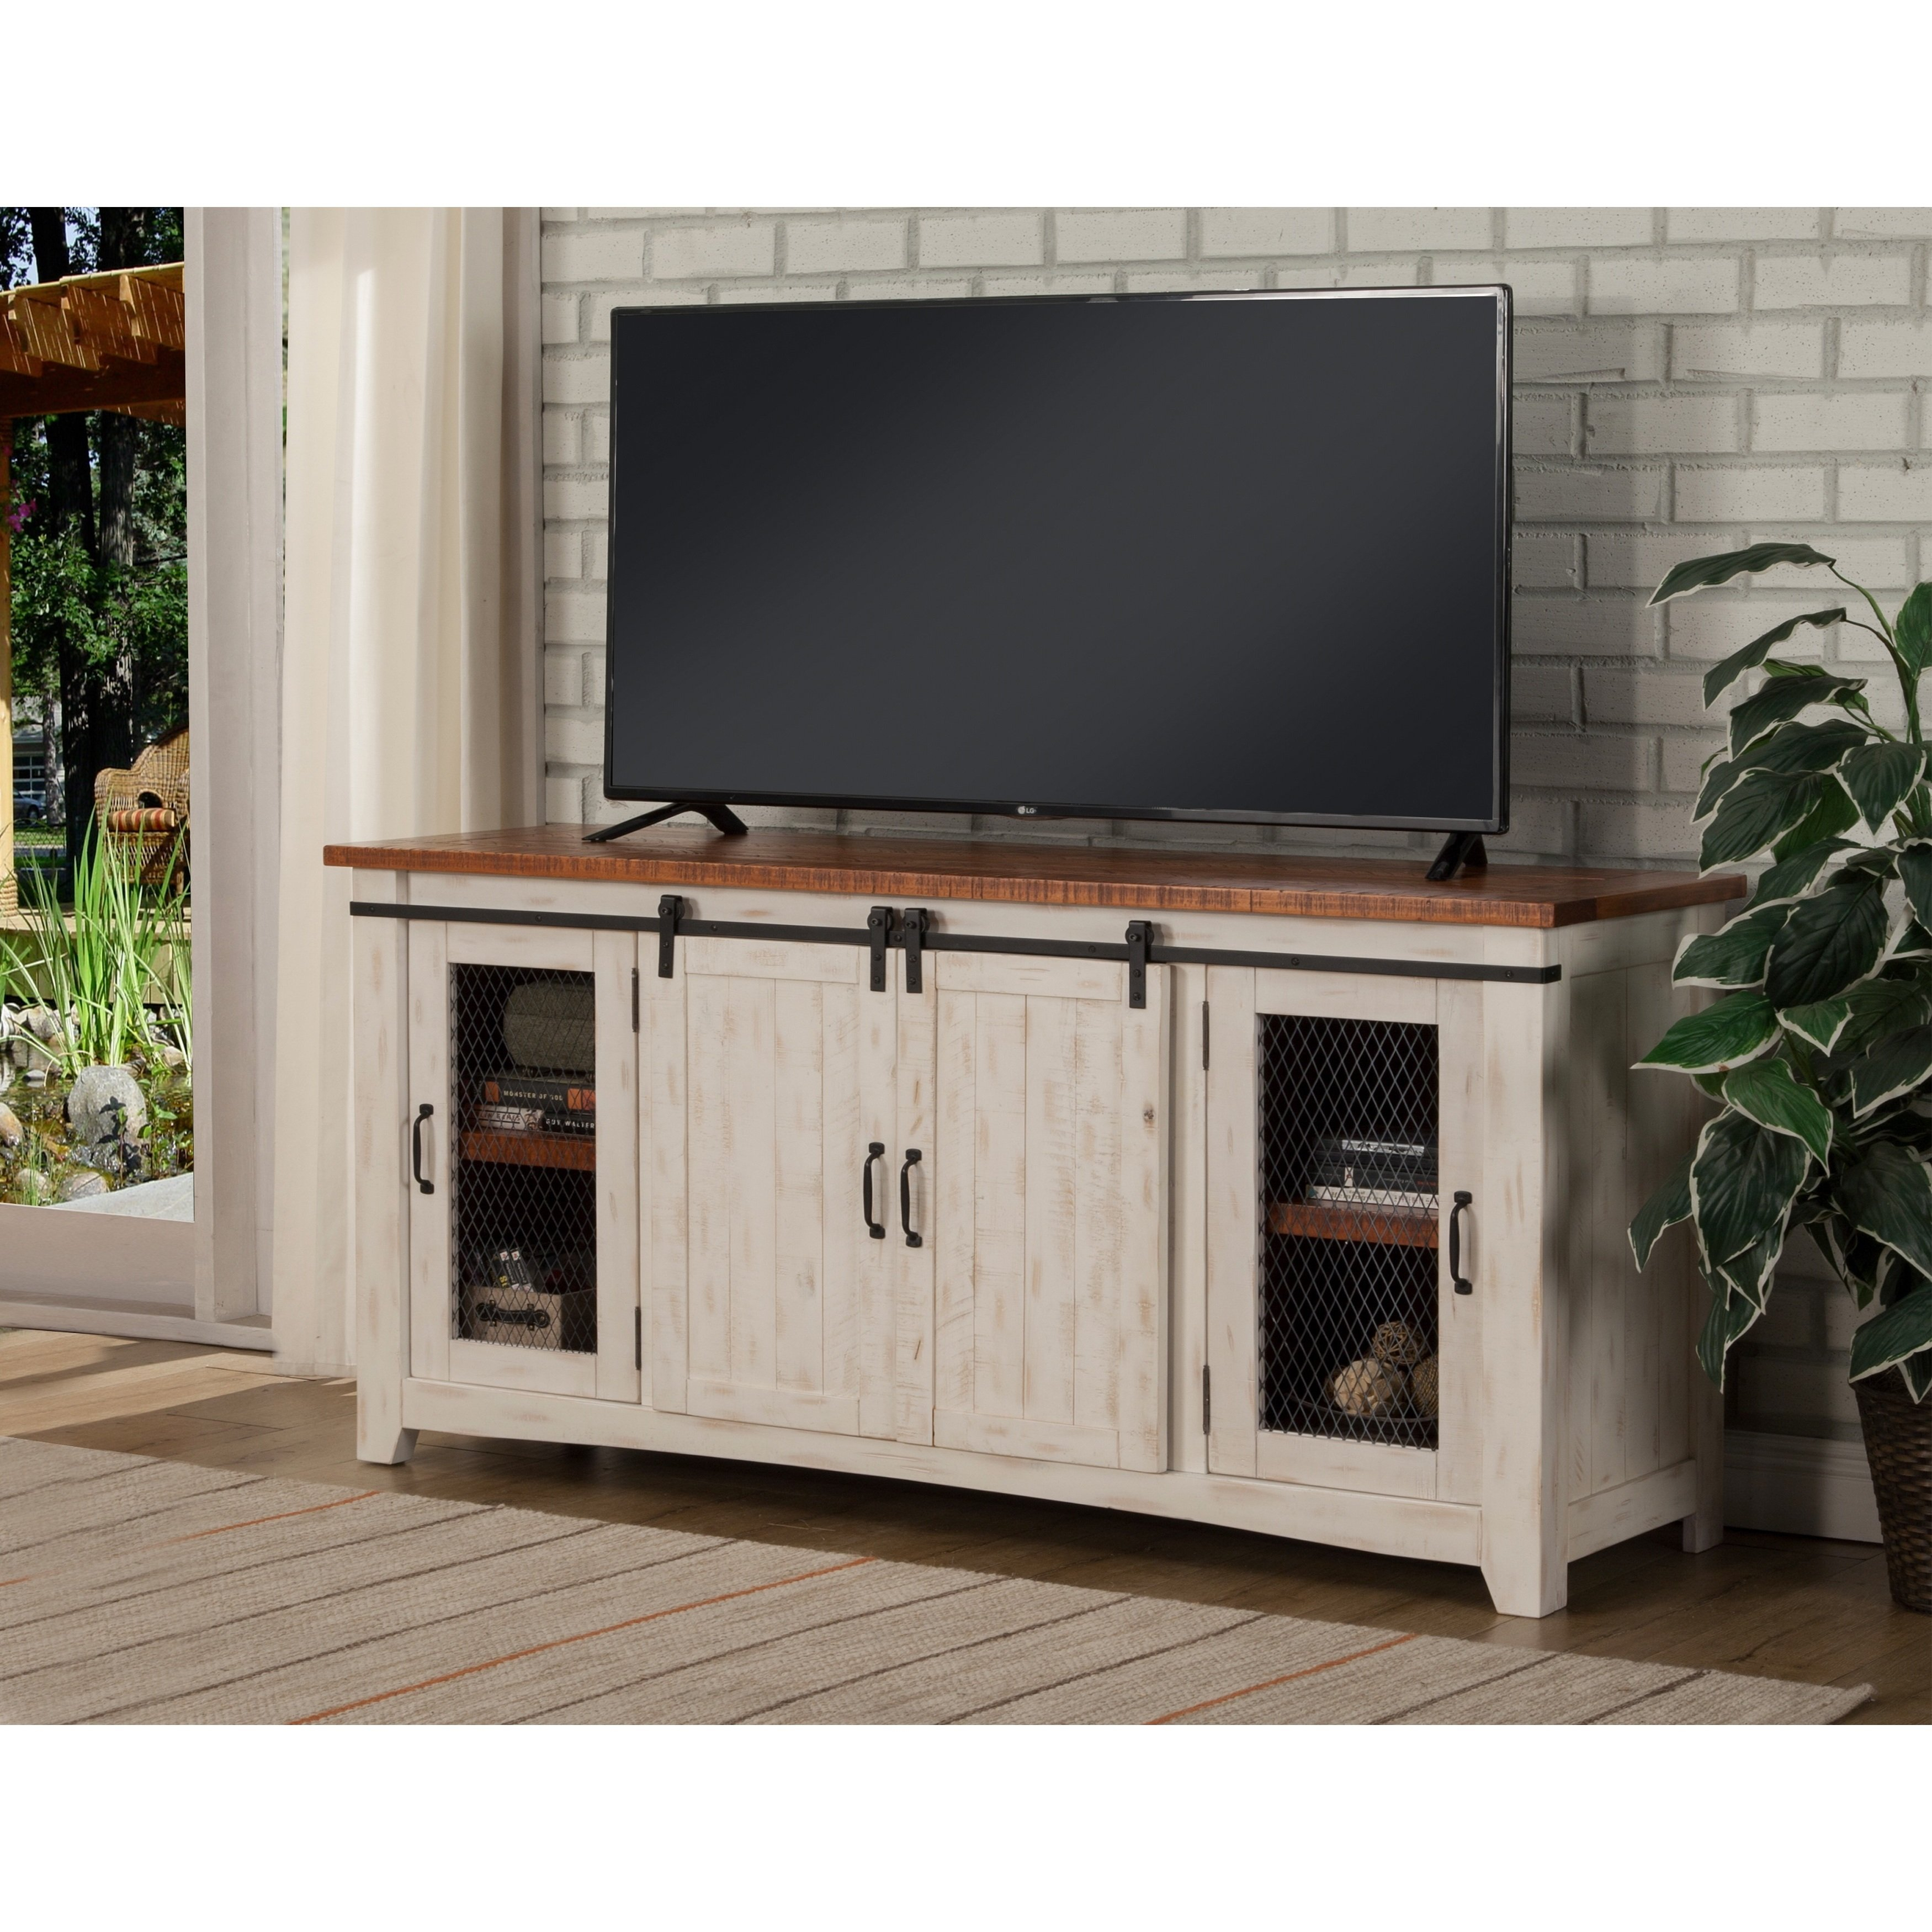 """Shop Martin Svensson Home Taos 65"""" Tv Stand – 65 Inches In Width For Laurent 60 Inch Tv Stands (View 24 of 30)"""